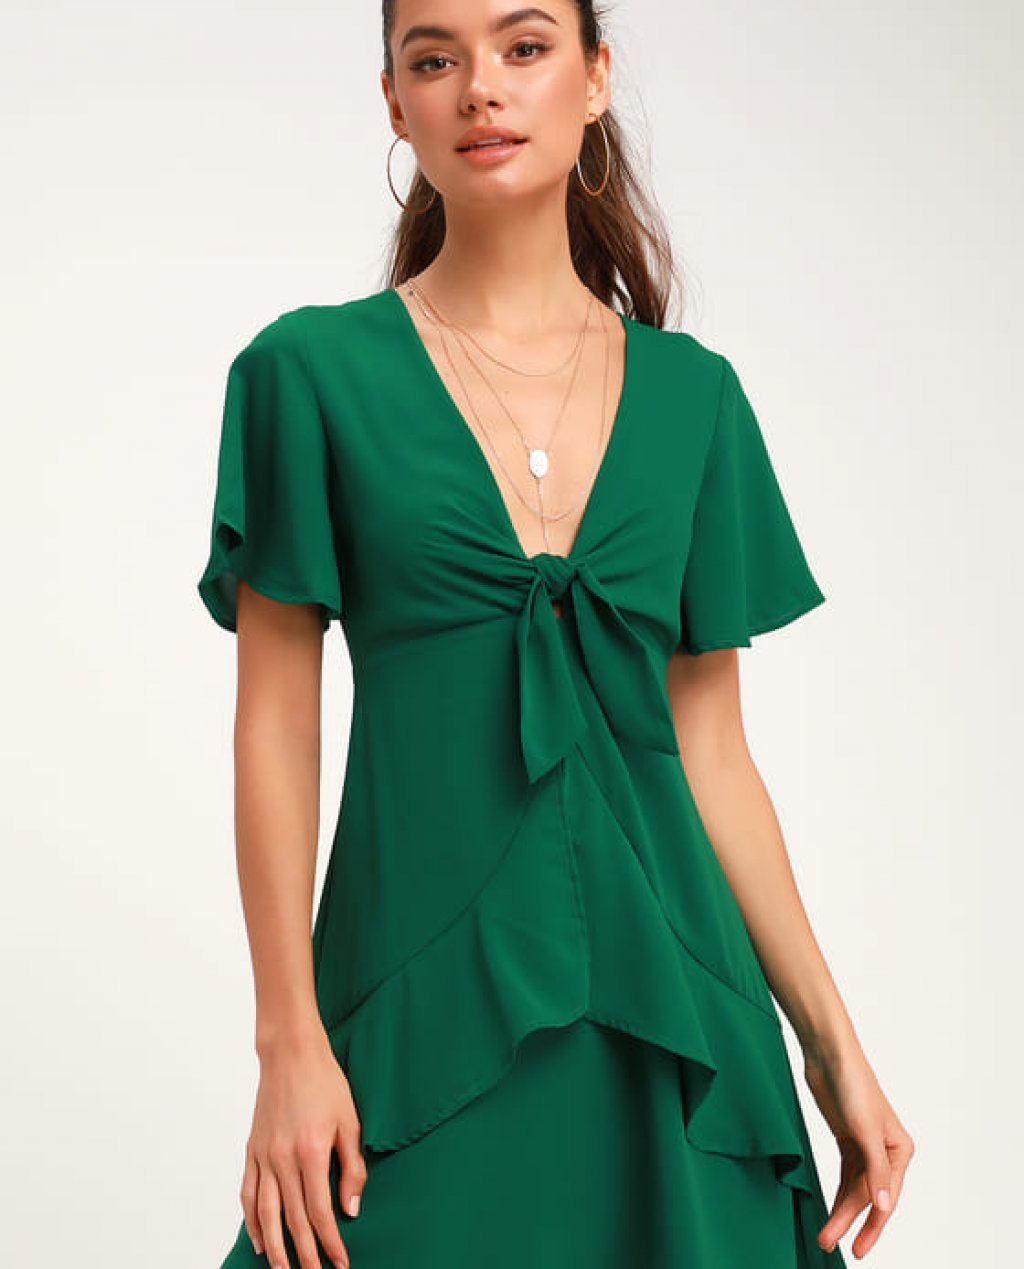 Jewell Green Tie-Front Ruffled Skater Dress